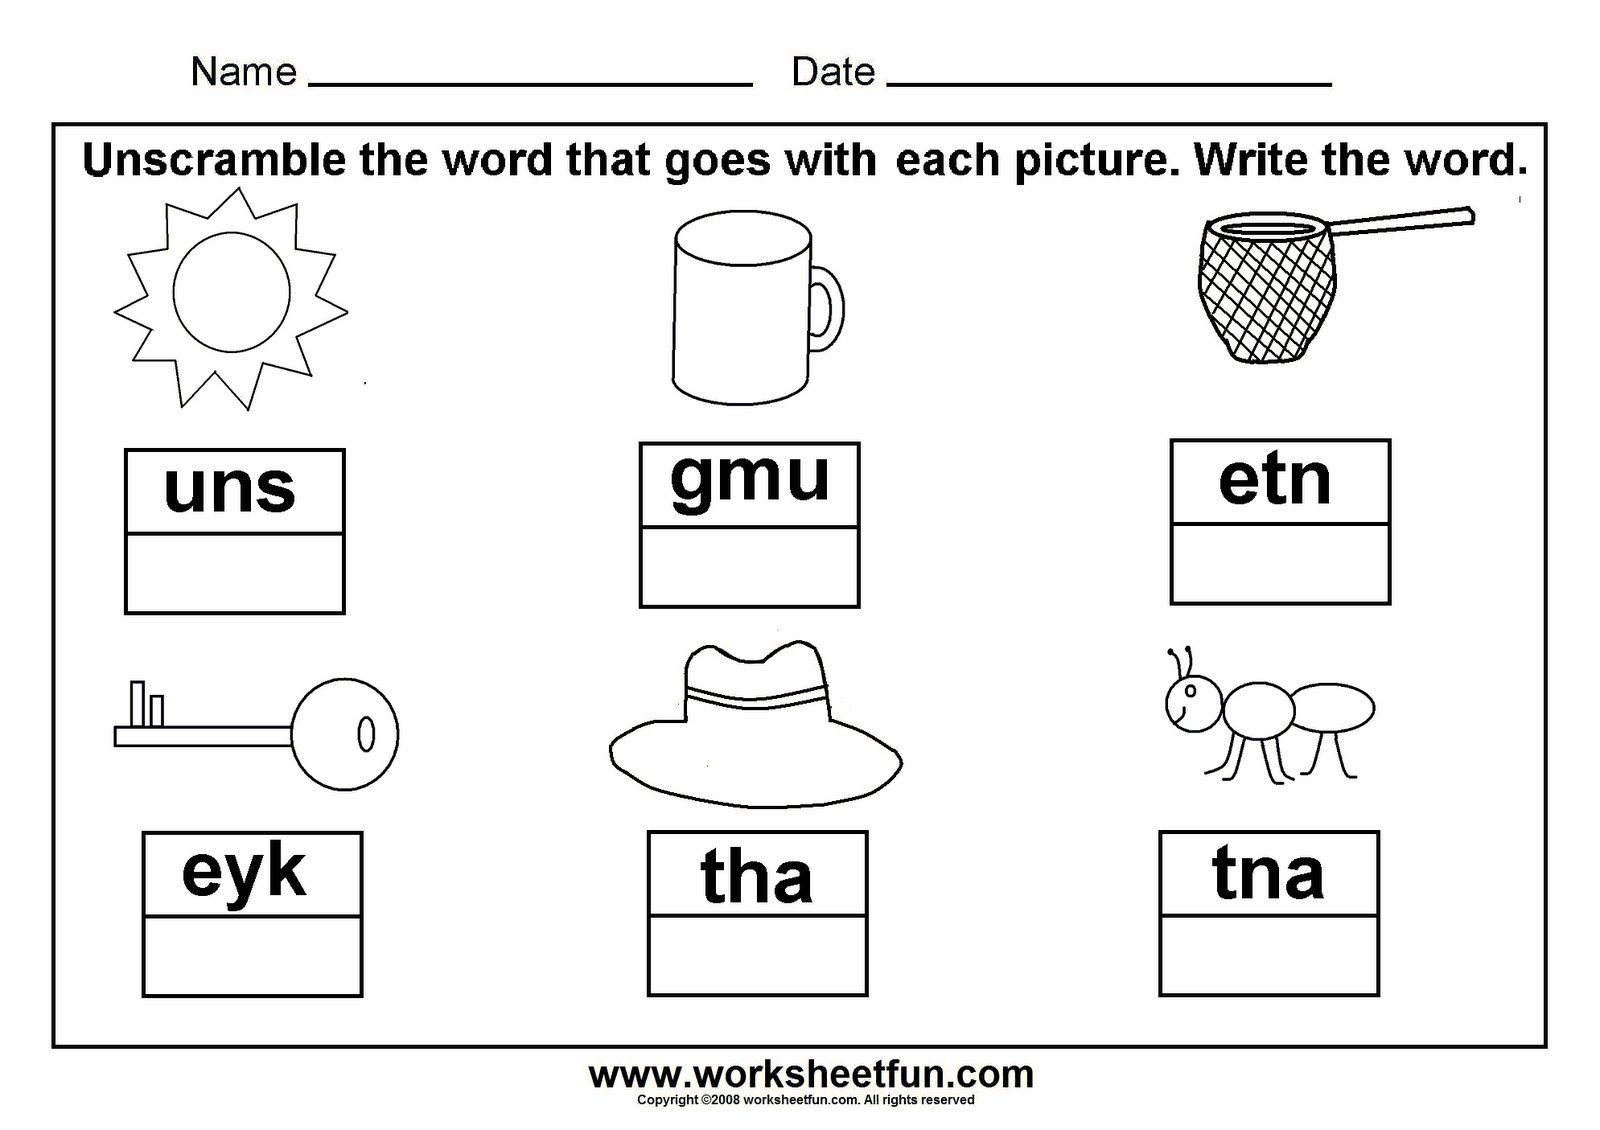 Unscramble Cvc Words Great To Laminate And Put With A Dry Erase Marker In A Word Work Ce Cvc Words Worksheets Letter Worksheets For Preschool Unscramble Words [ 1130 x 1600 Pixel ]